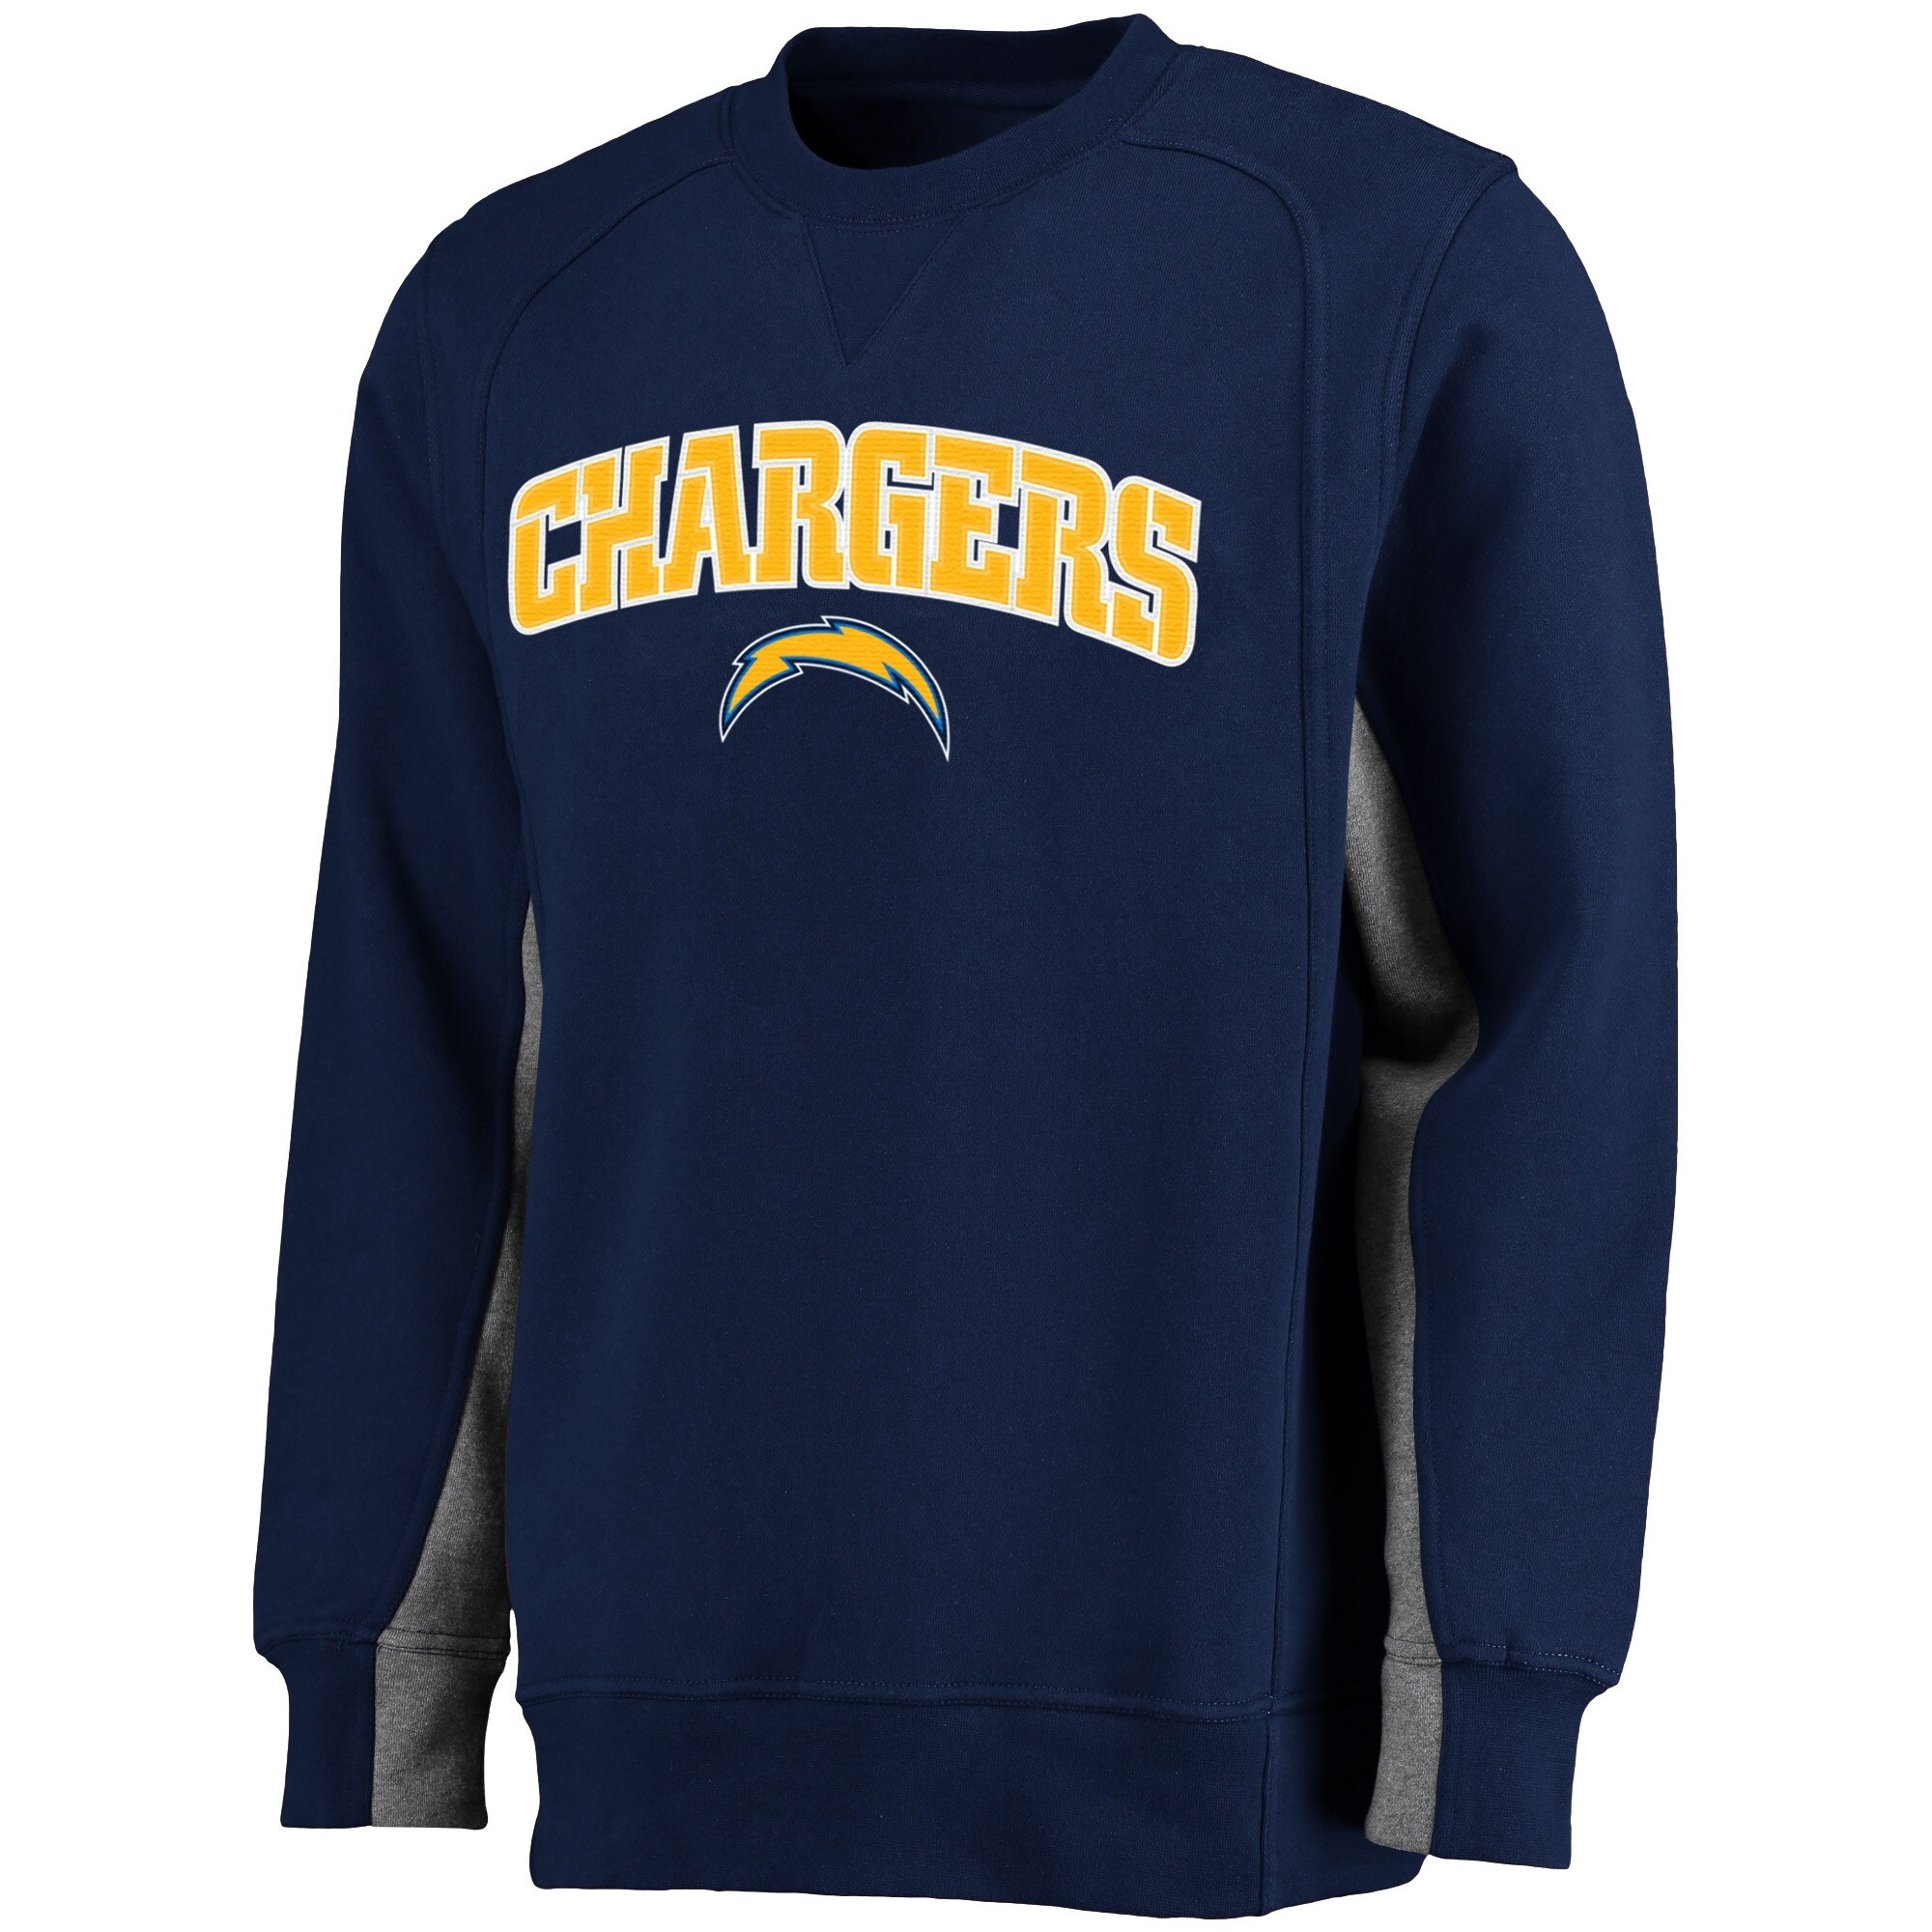 Los Angeles Chargers NFL Pro Line Kearny Crew Sweatshirt - Navy